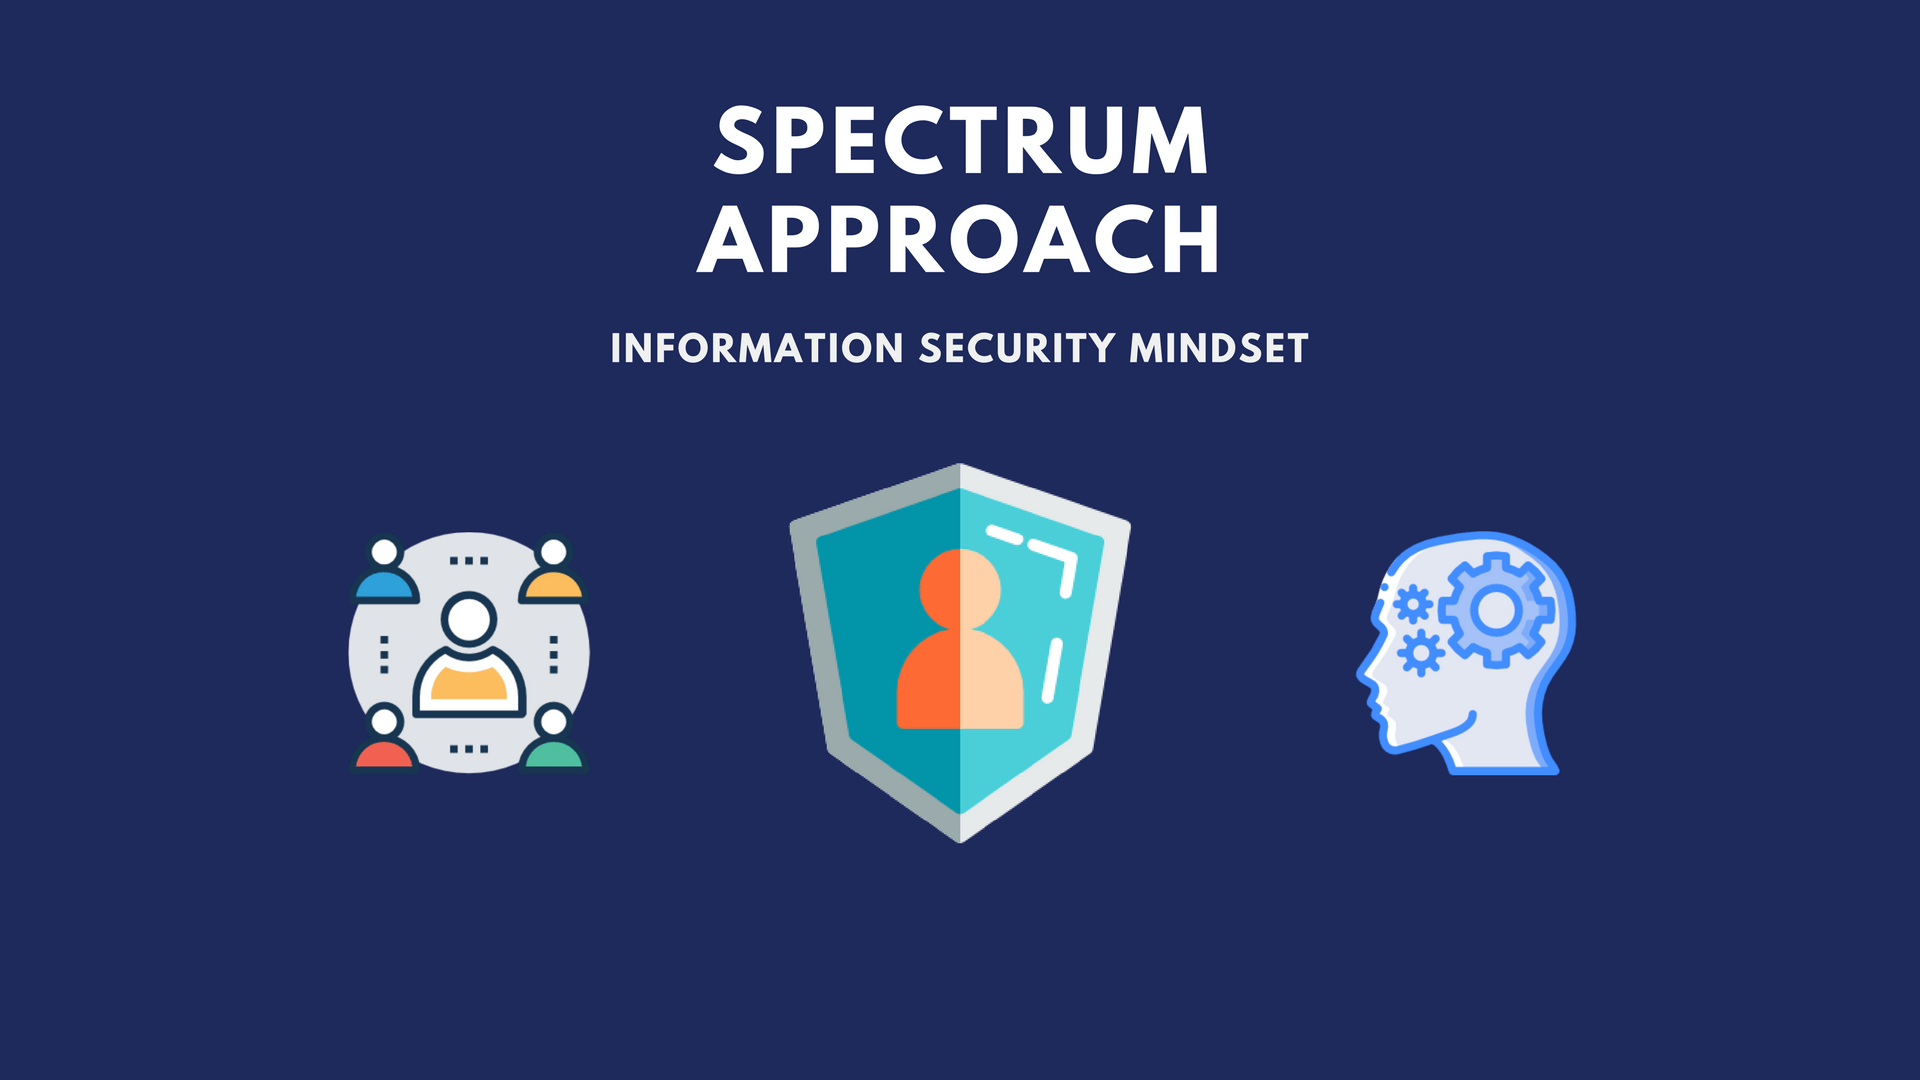 Spectrum Approach - Information Security Mindset